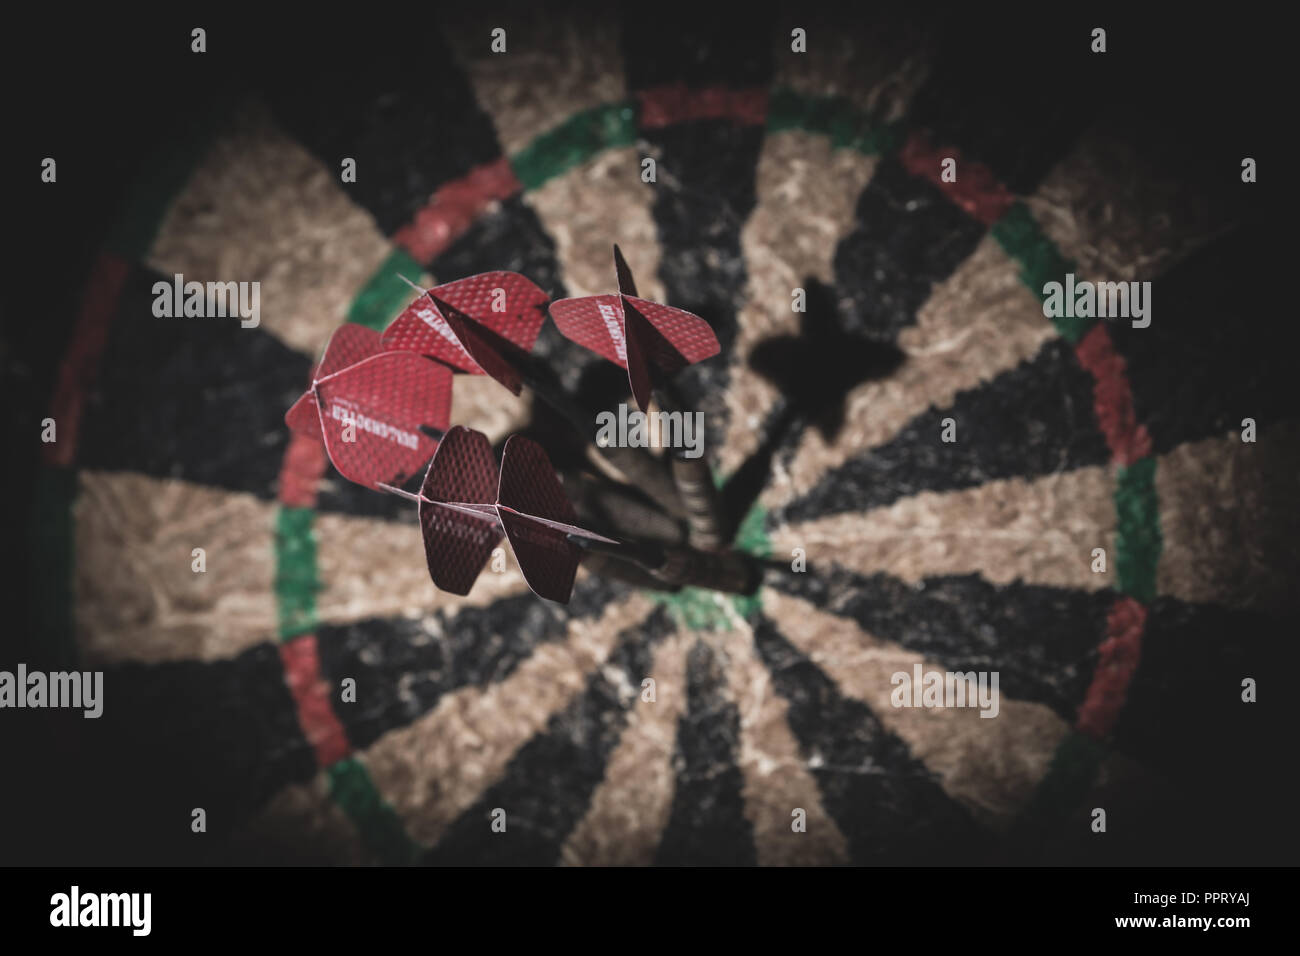 Some darts stuck in the bullseye of a cheap dartboard. - Stock Image